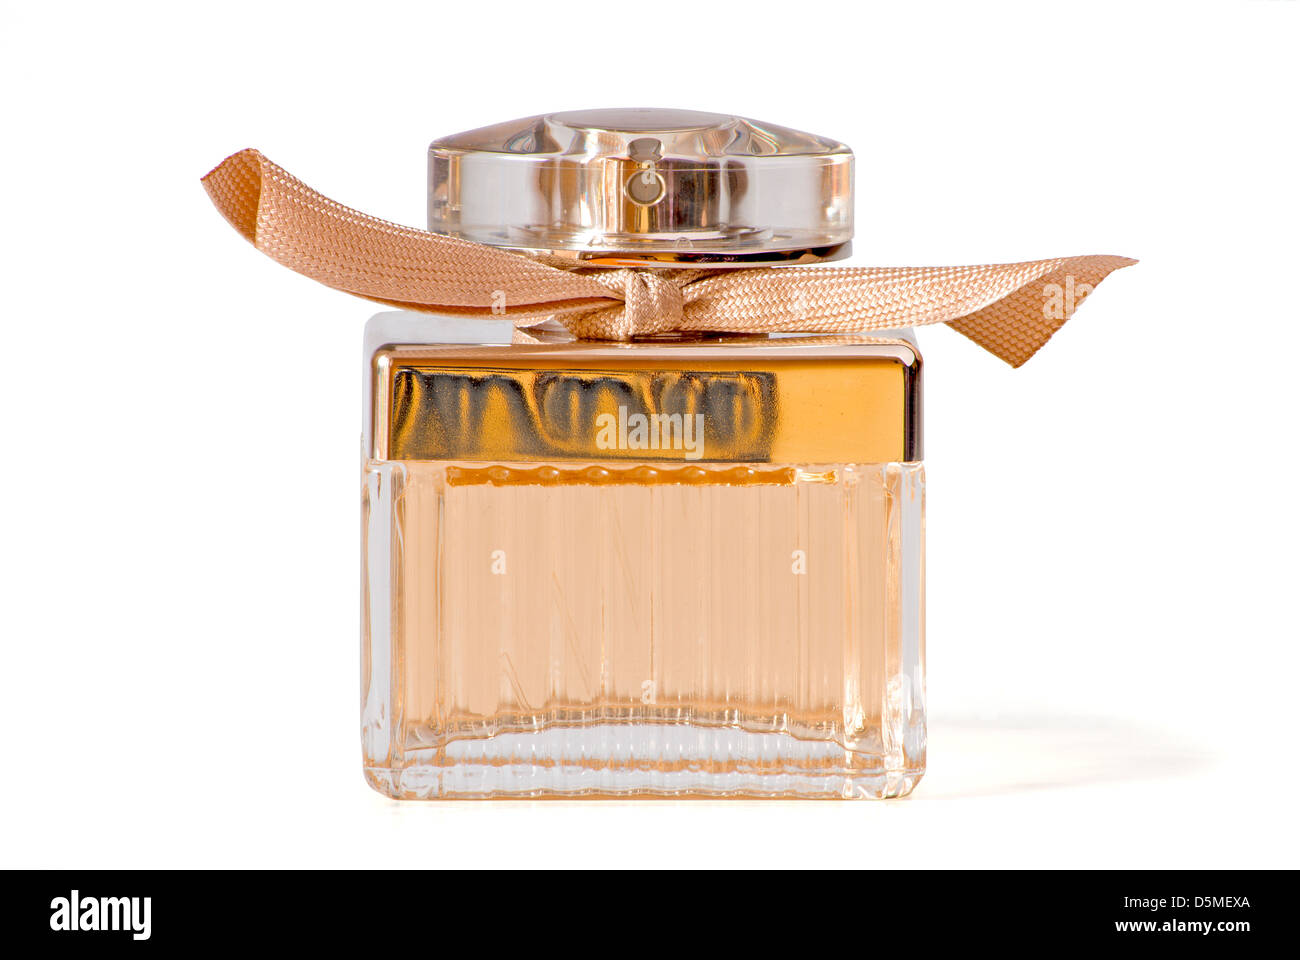 Perfume bottle on a white background. Clipping path including - Stock Image